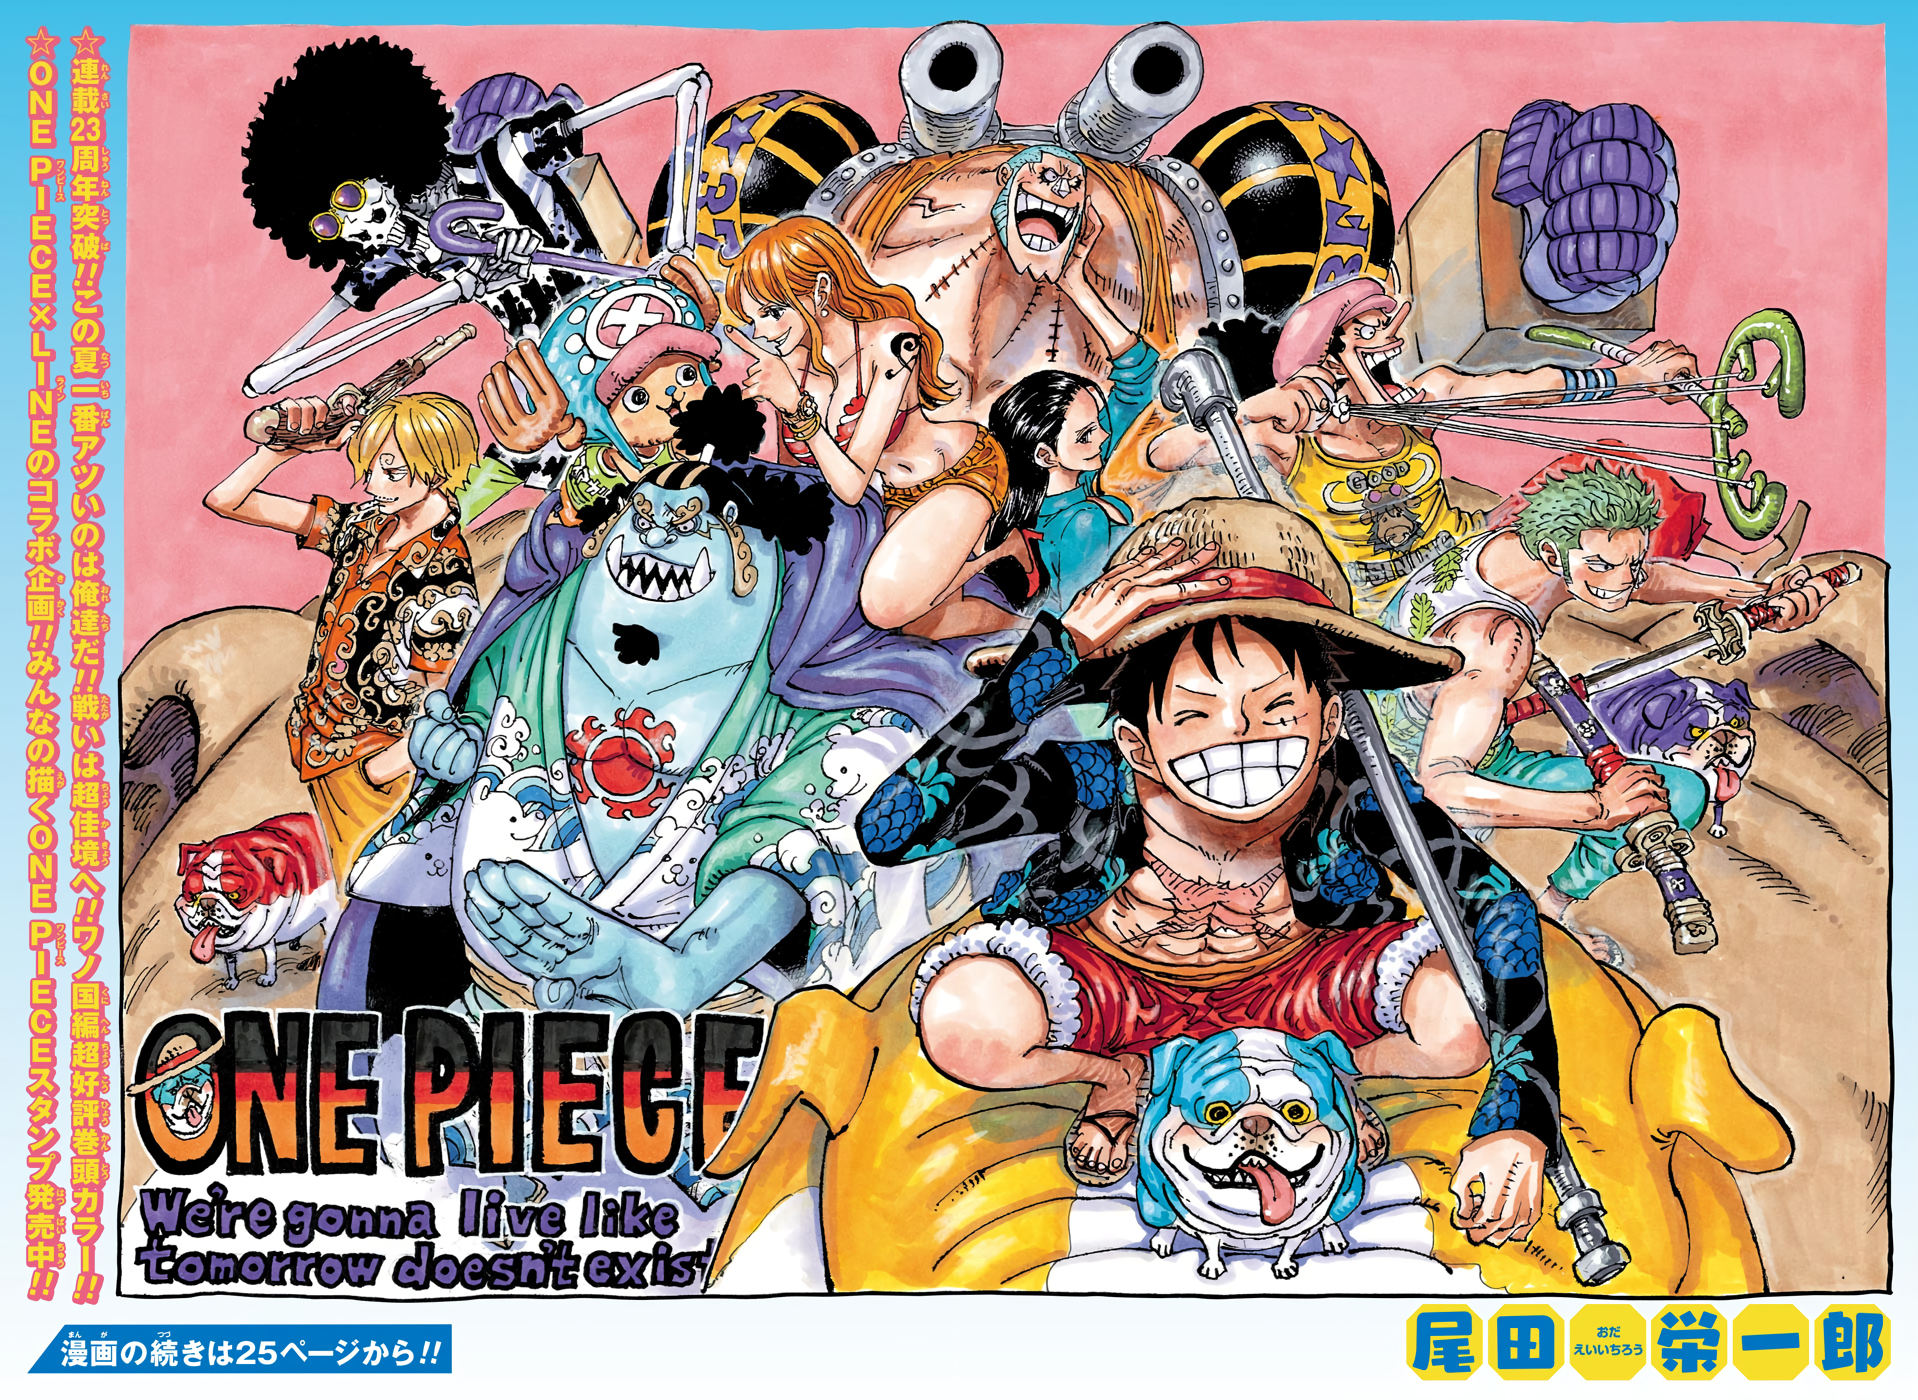 One Piece Episodenliste